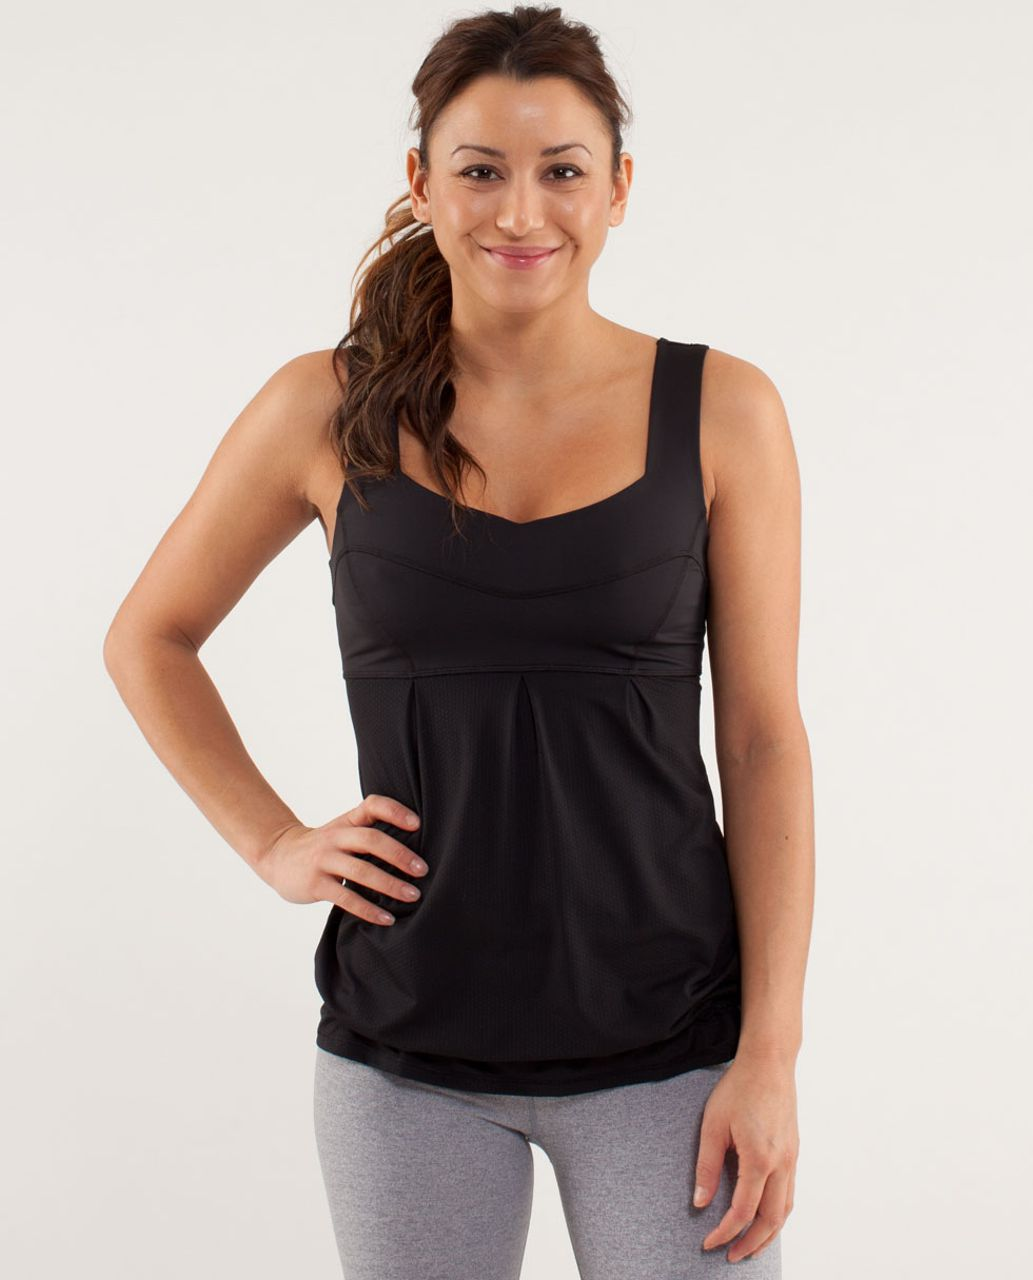 Lululemon Run:  Tame Me Tank - Black